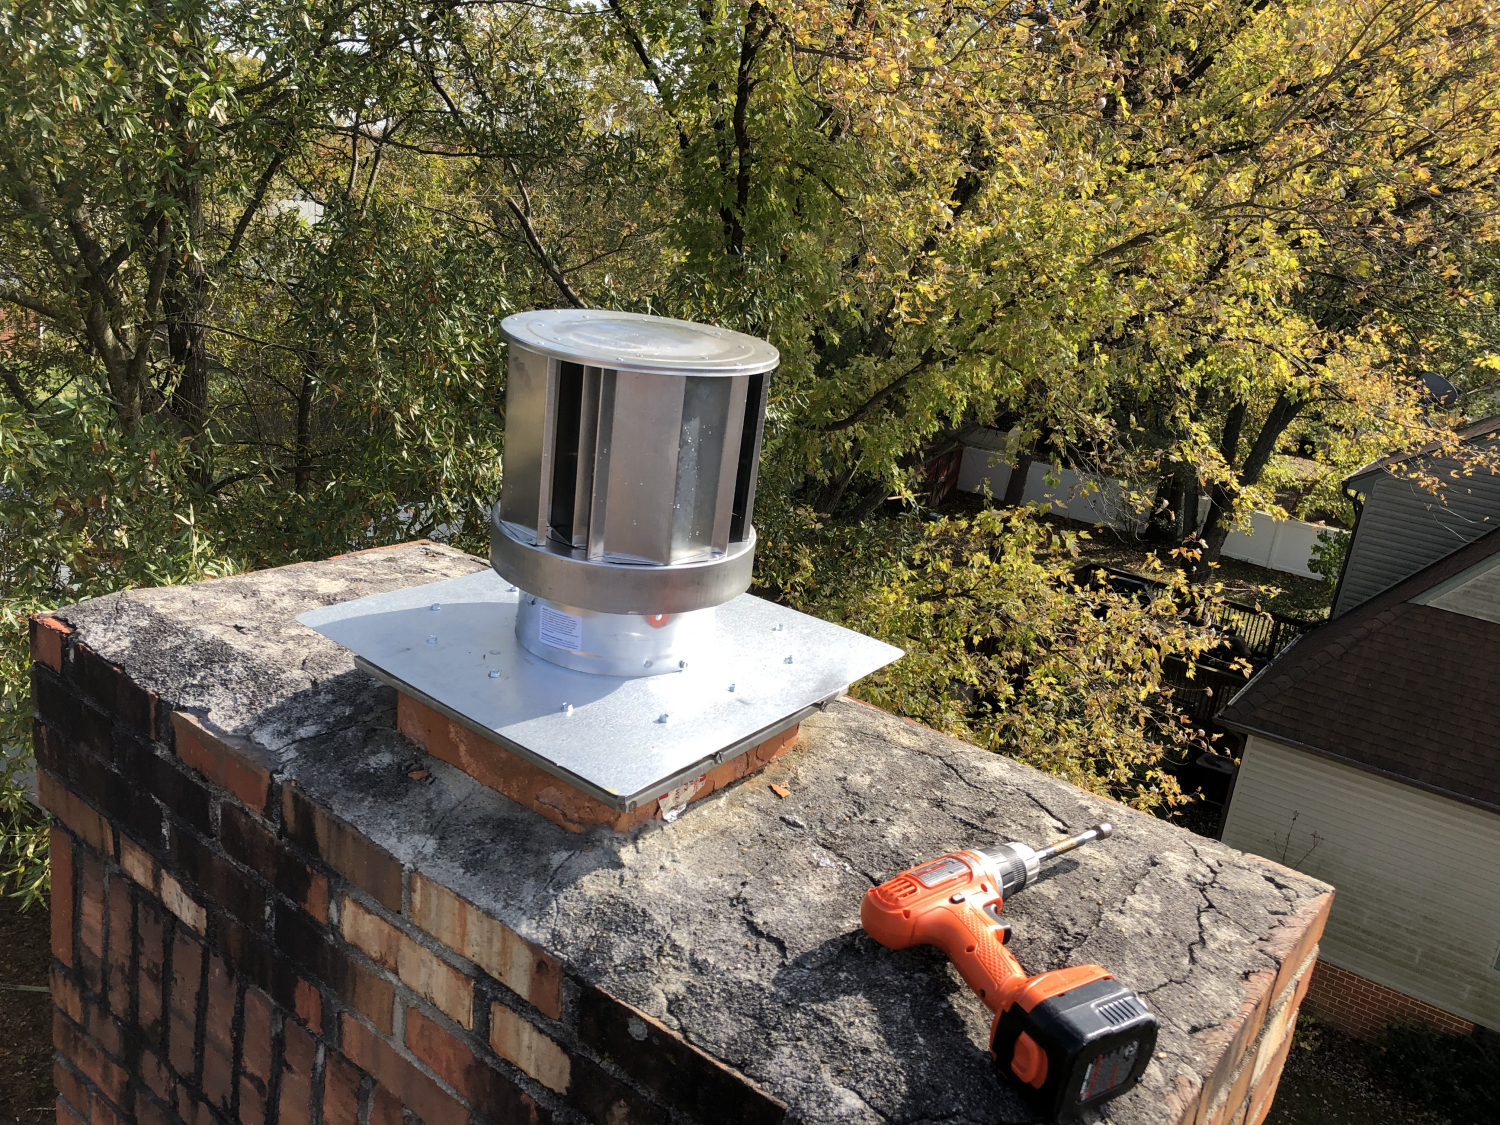 Simpson DuraVent Chimney Products